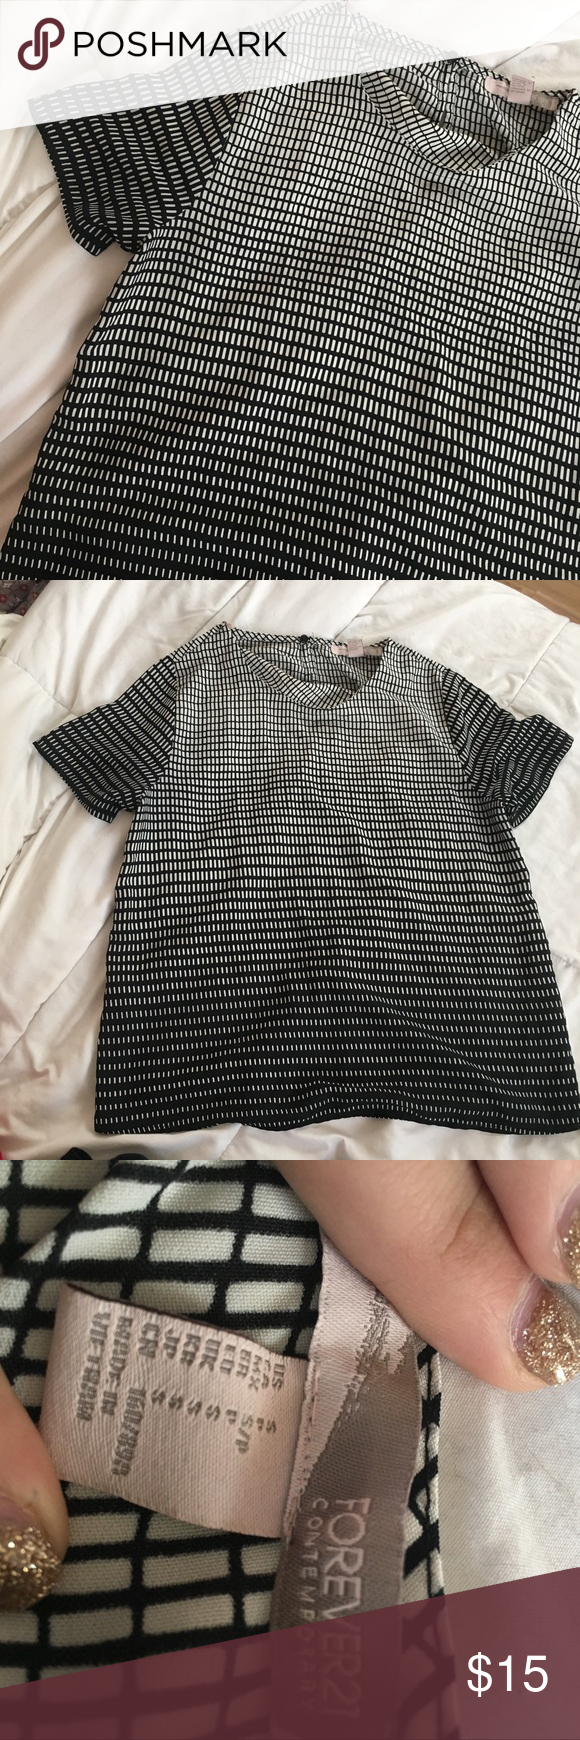 Forever 21 grid shirt Forever 21 shirt with a gridlike